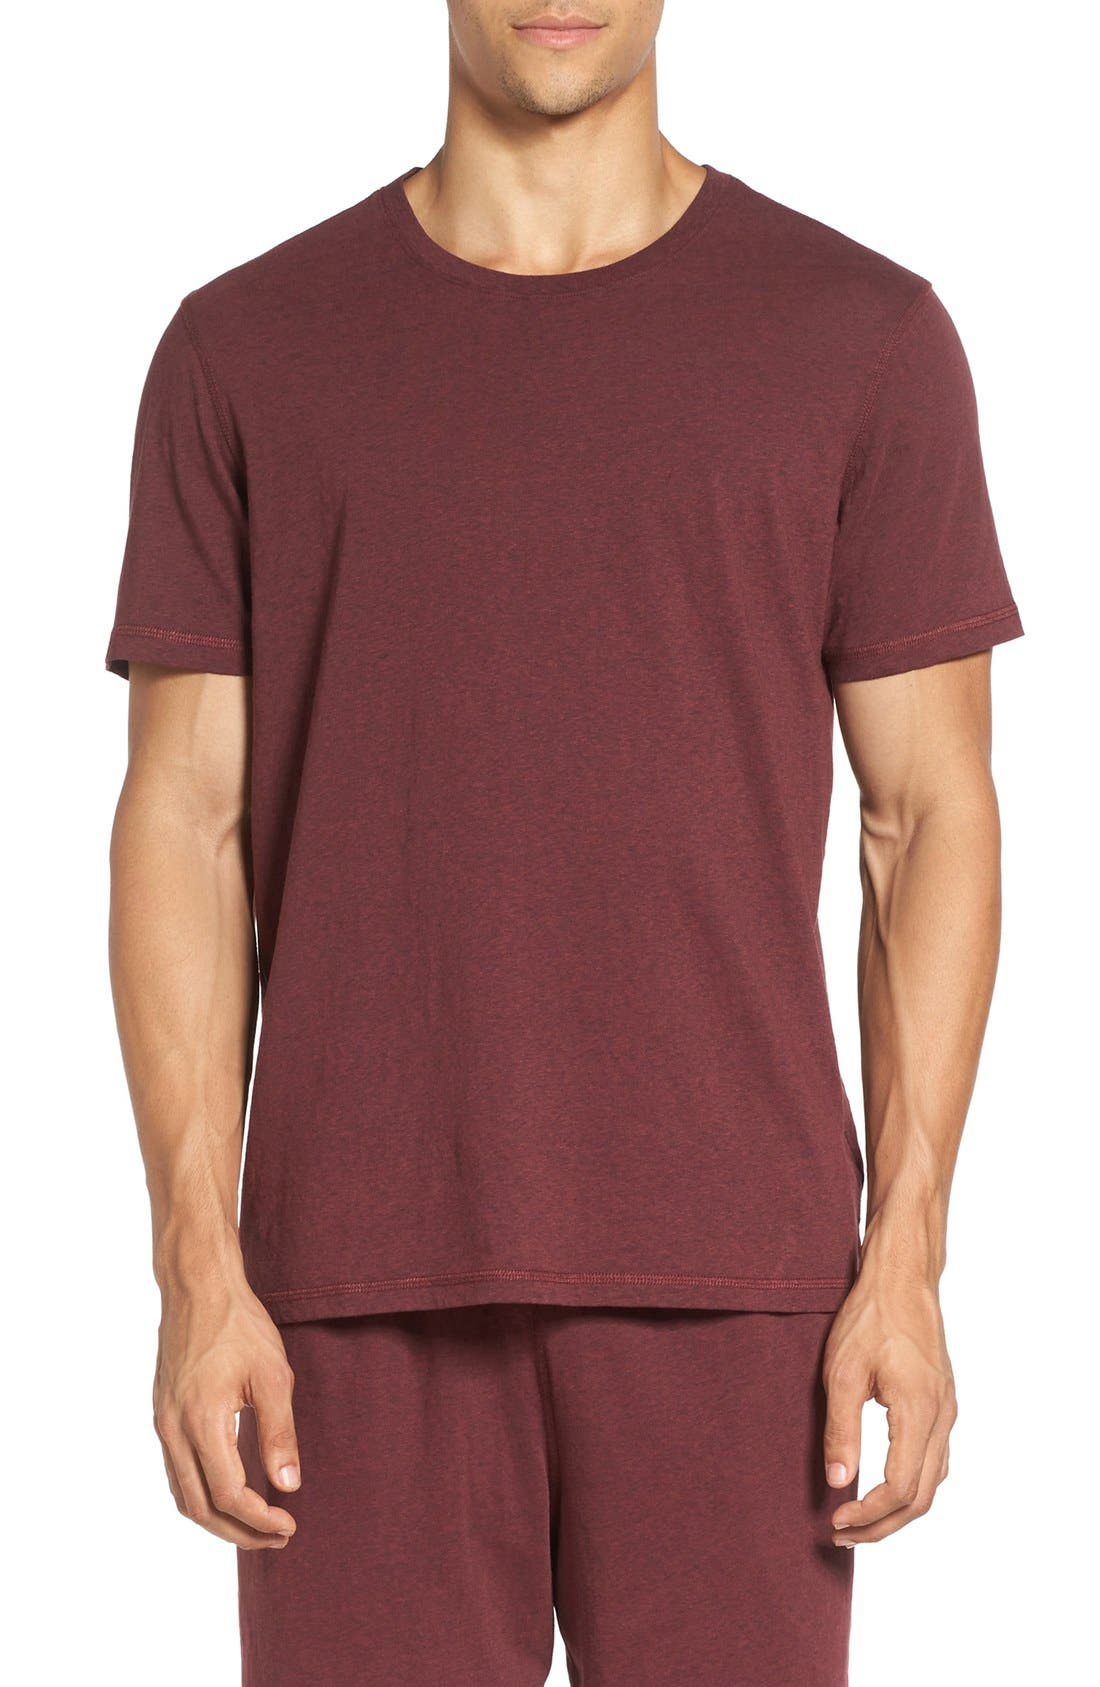 DANIEL BUCHLER Recycled Cotton Blend T-Shirt